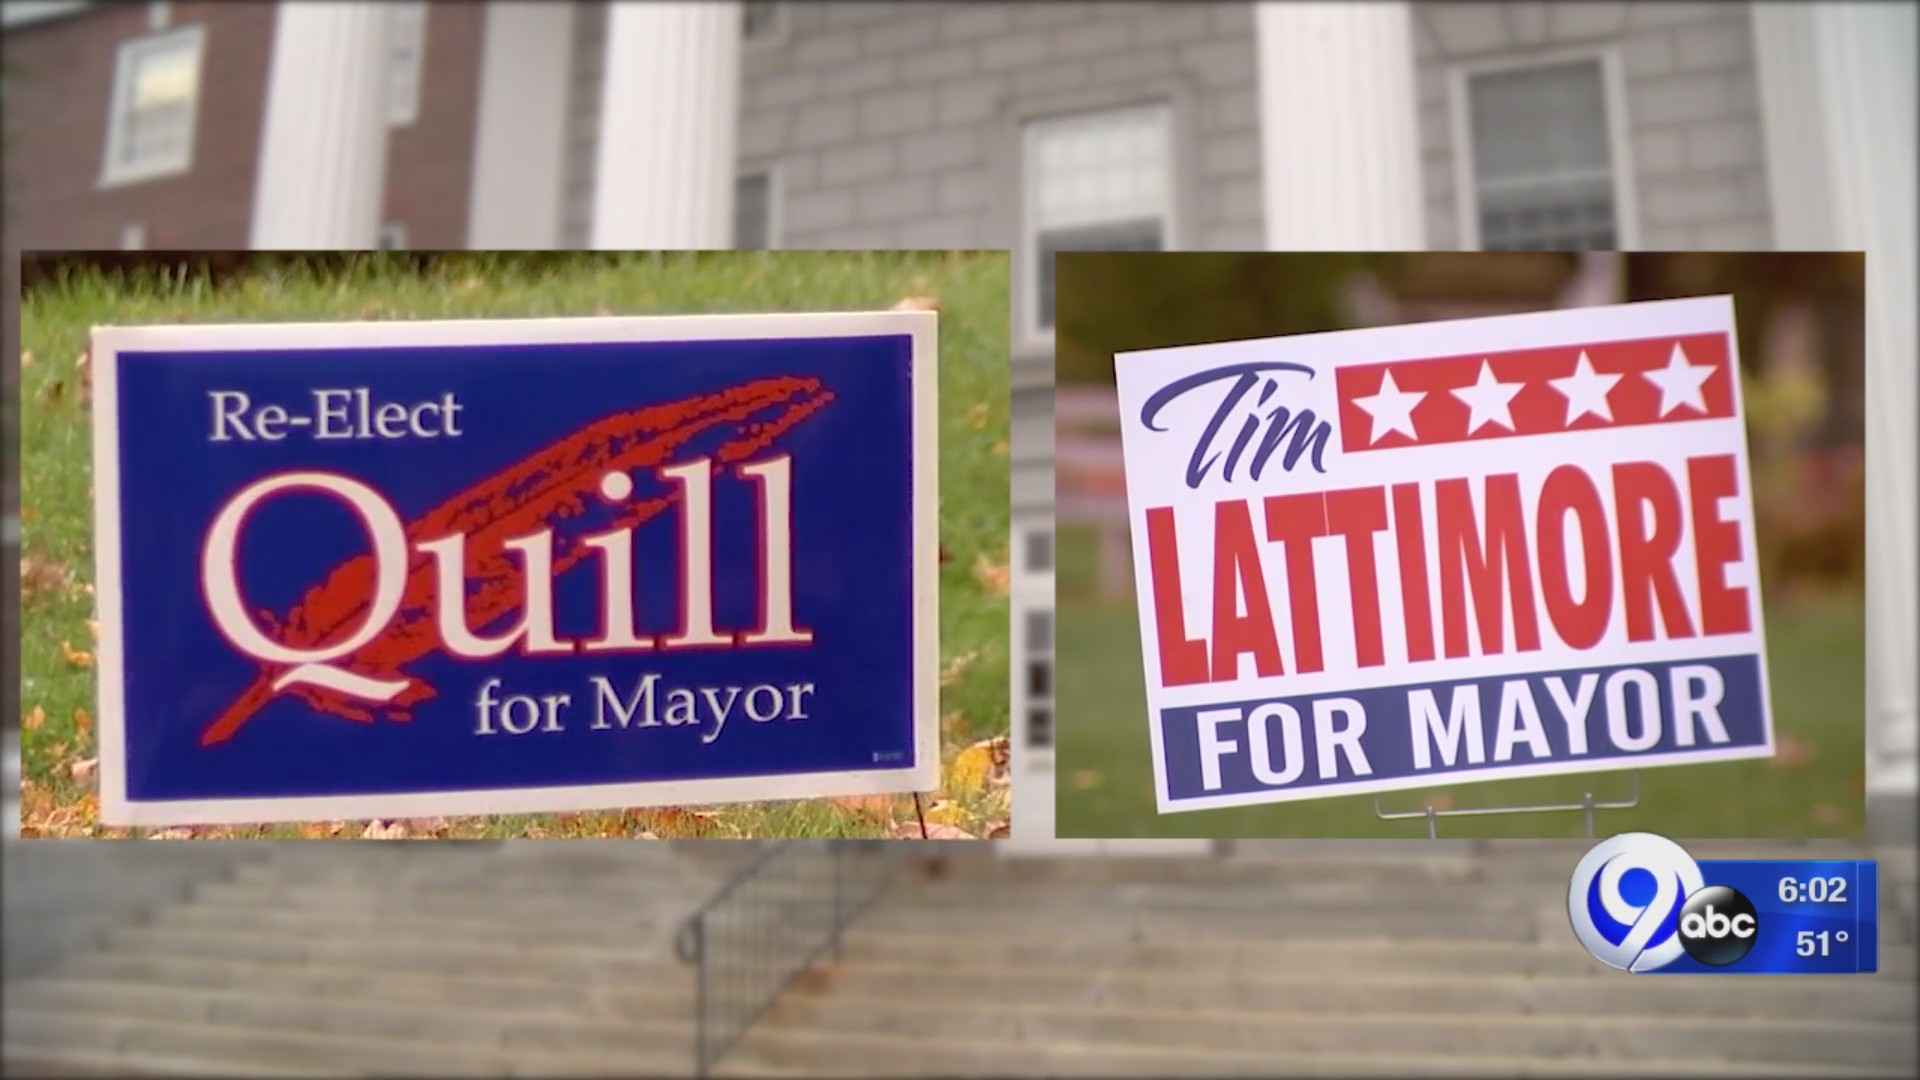 Lattimore hopes this is the year to defeat Quill in Auburn mayoral contest